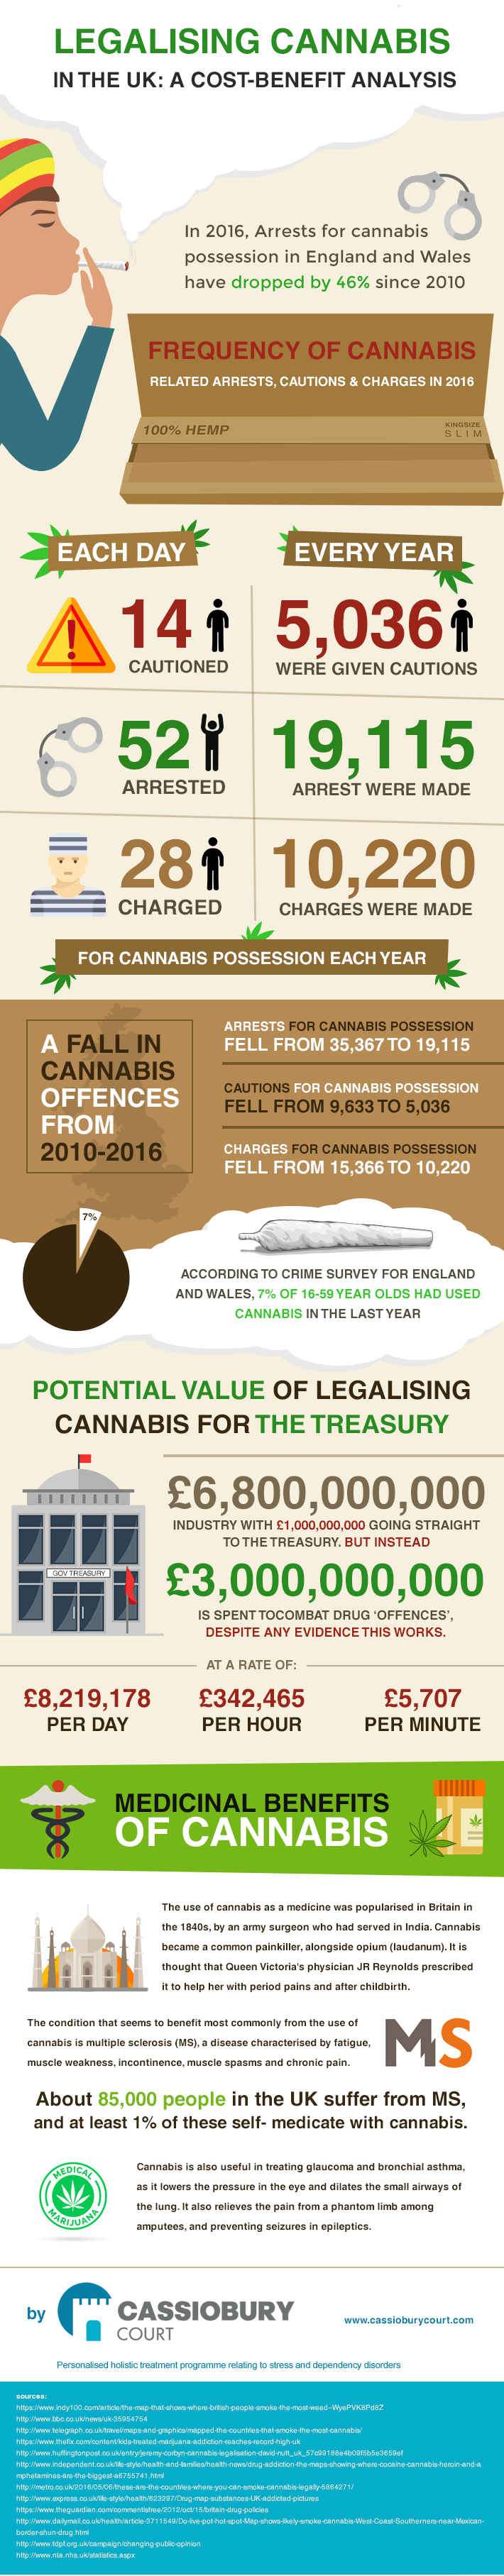 cannabis cost benefit analysis uk